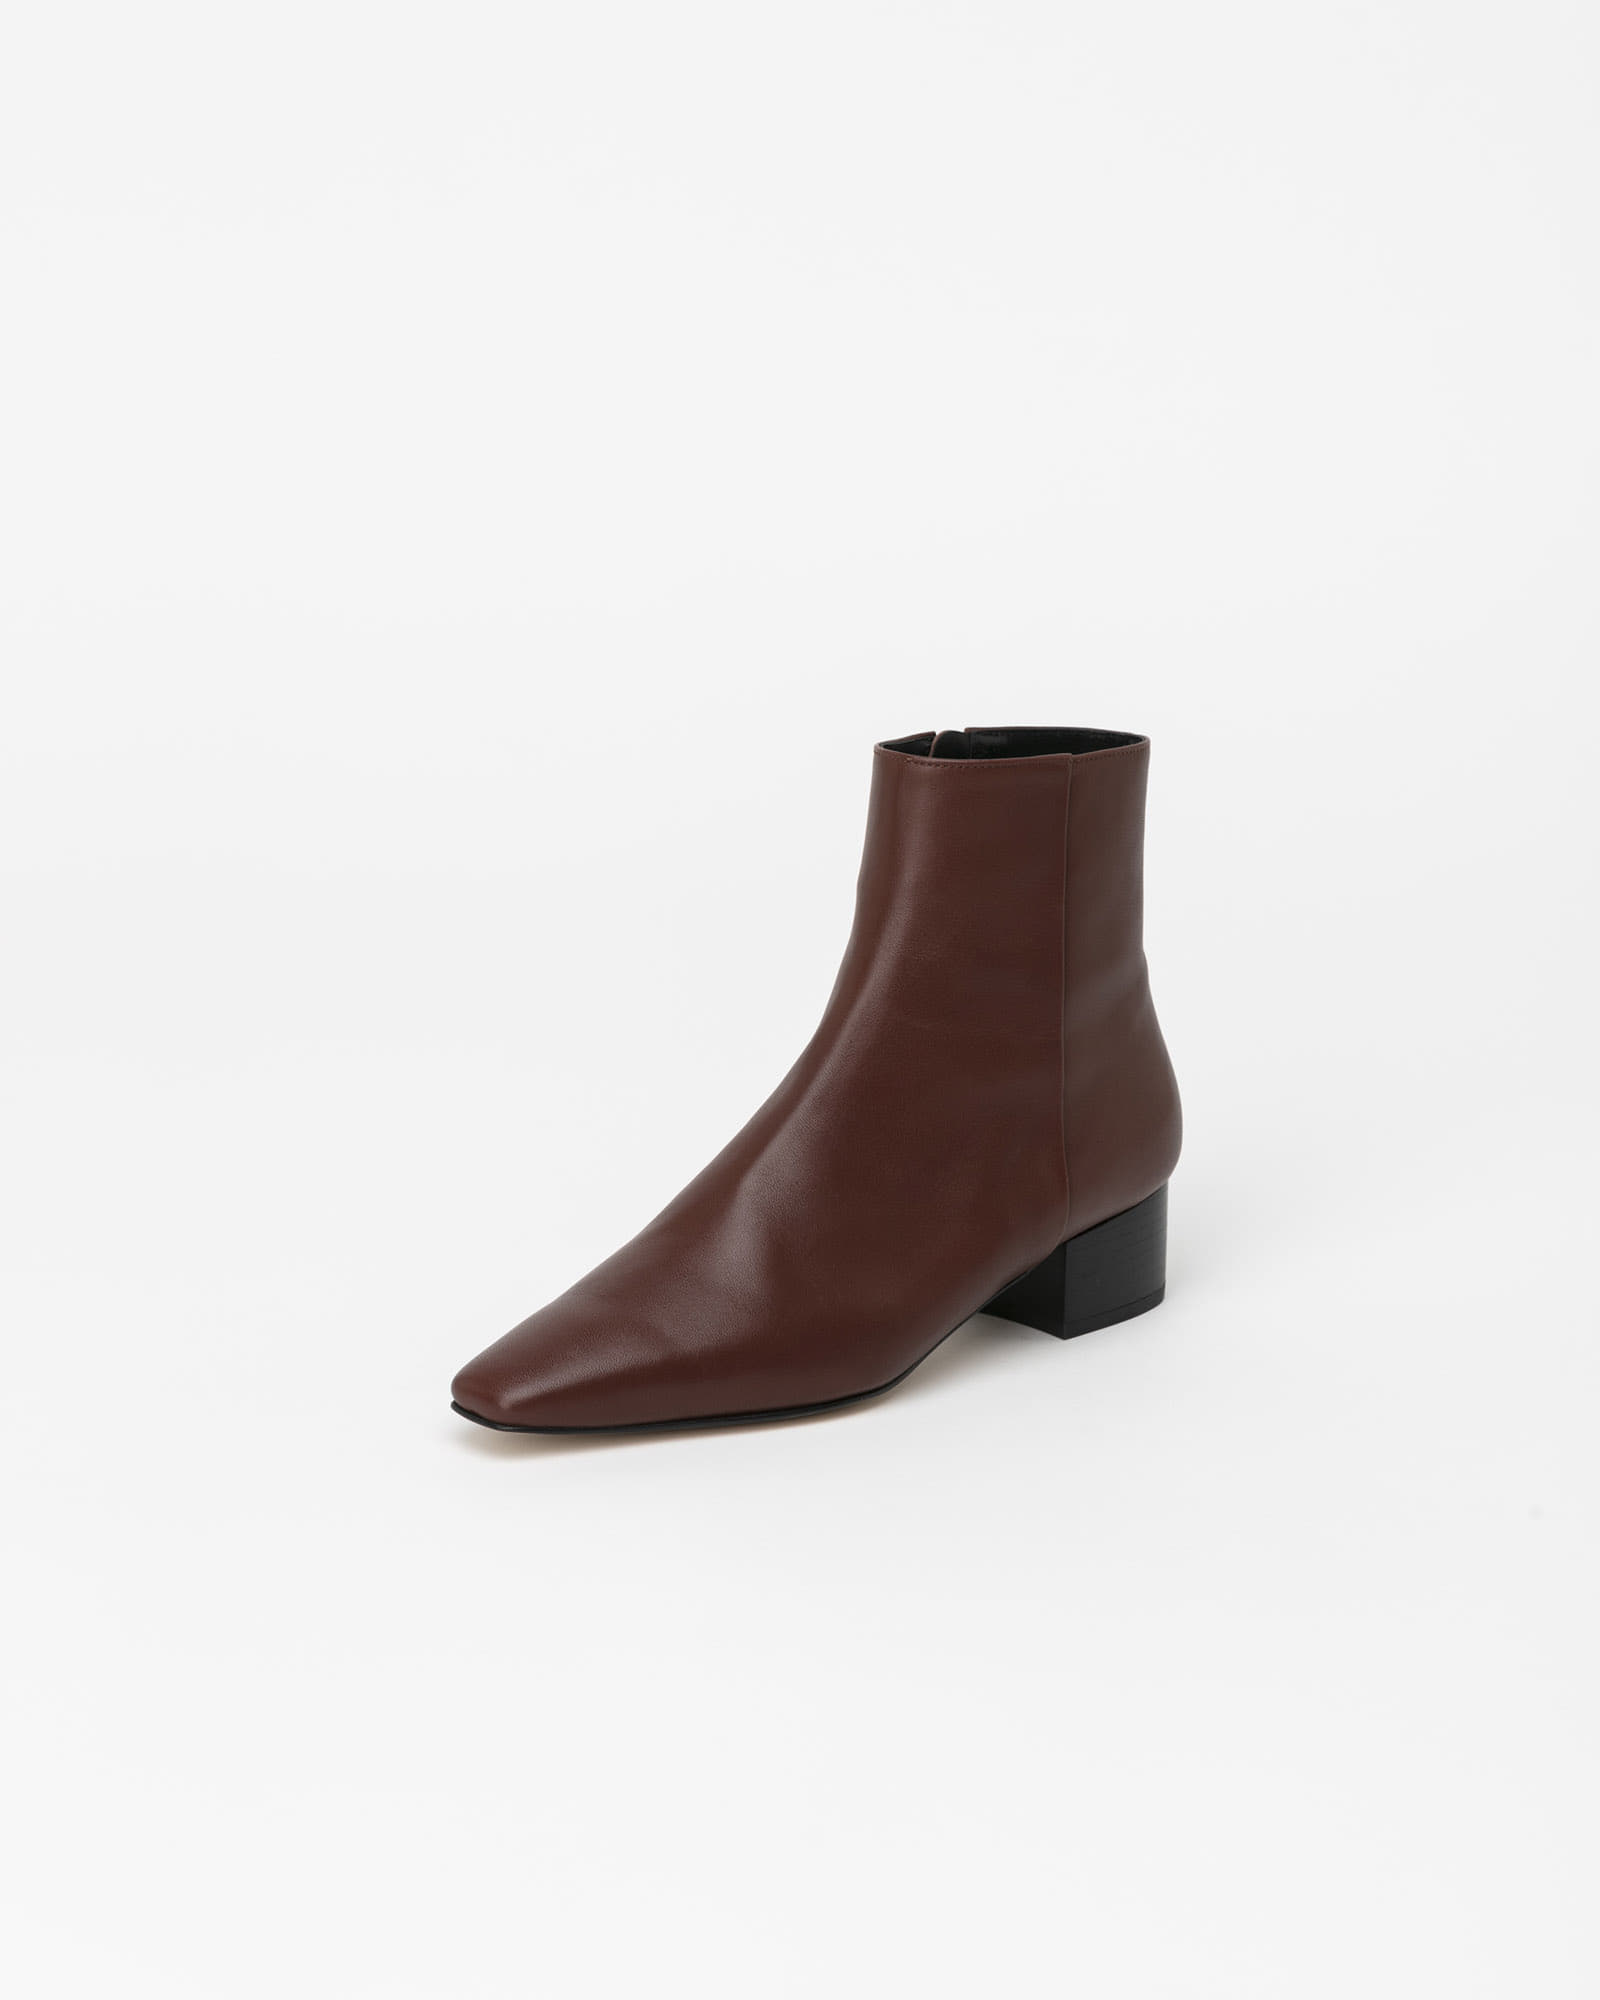 Karluv Boots in Tender Brown